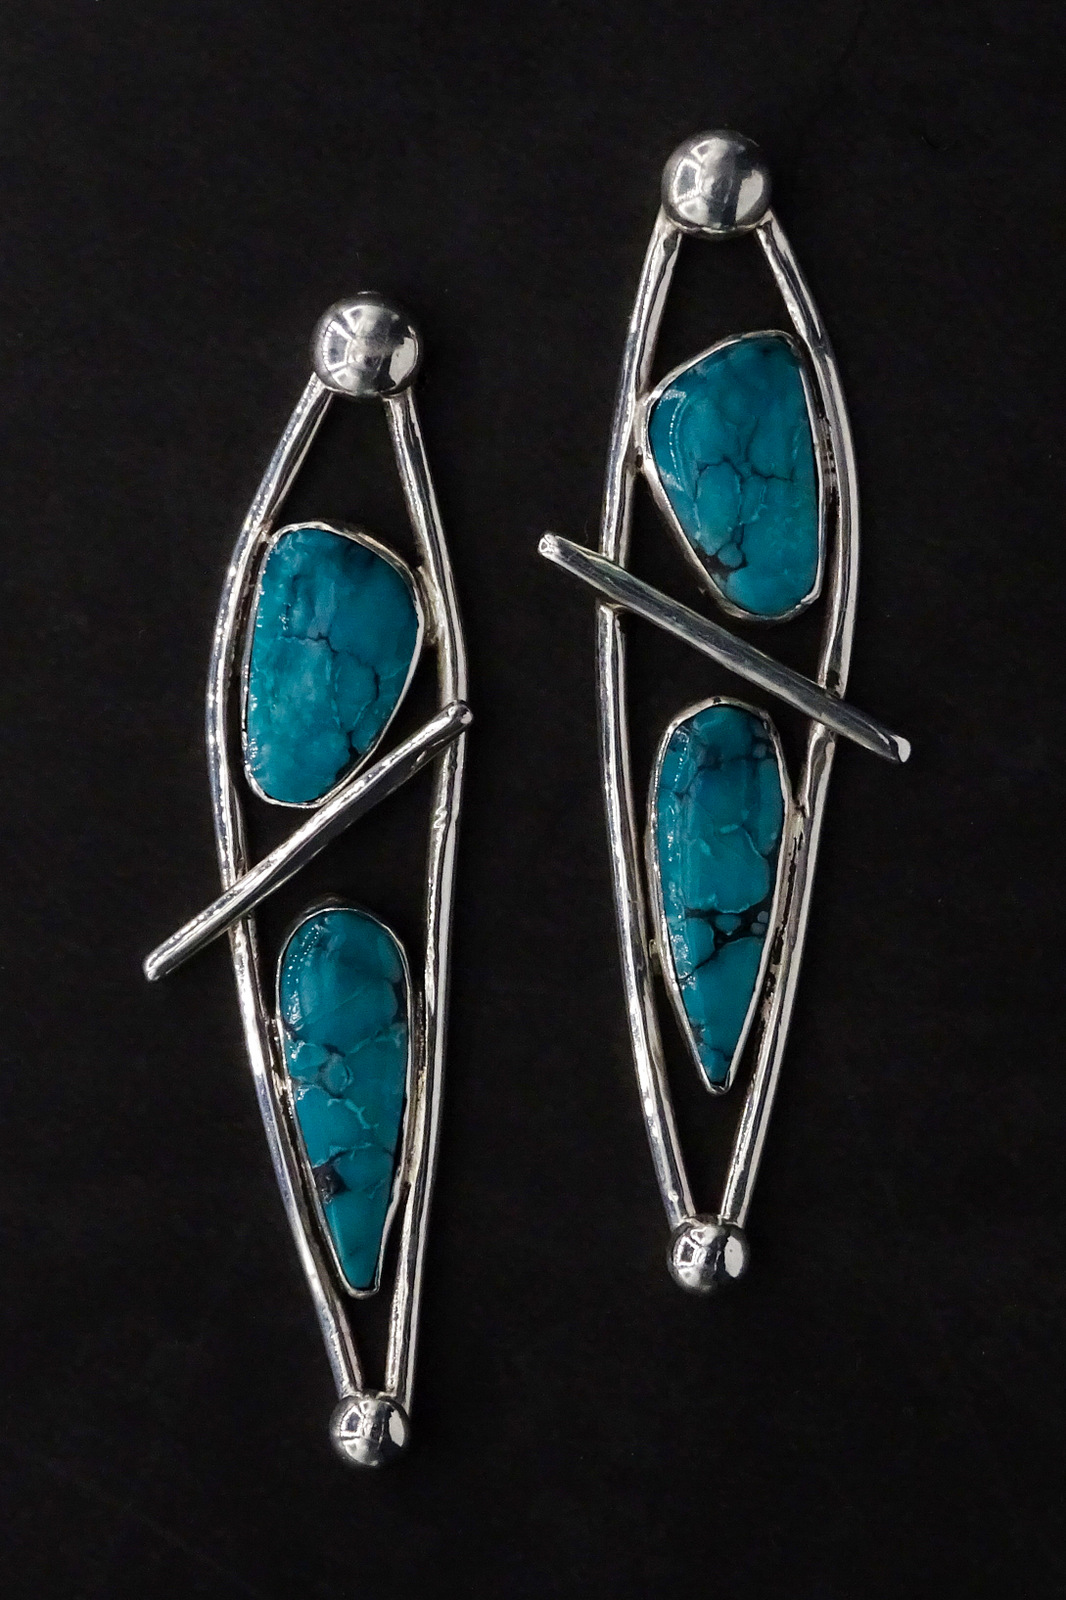 LONG ABSTRACT TURQUOISE EARRINGS,  Silver Post Back,  3 x .75 inches